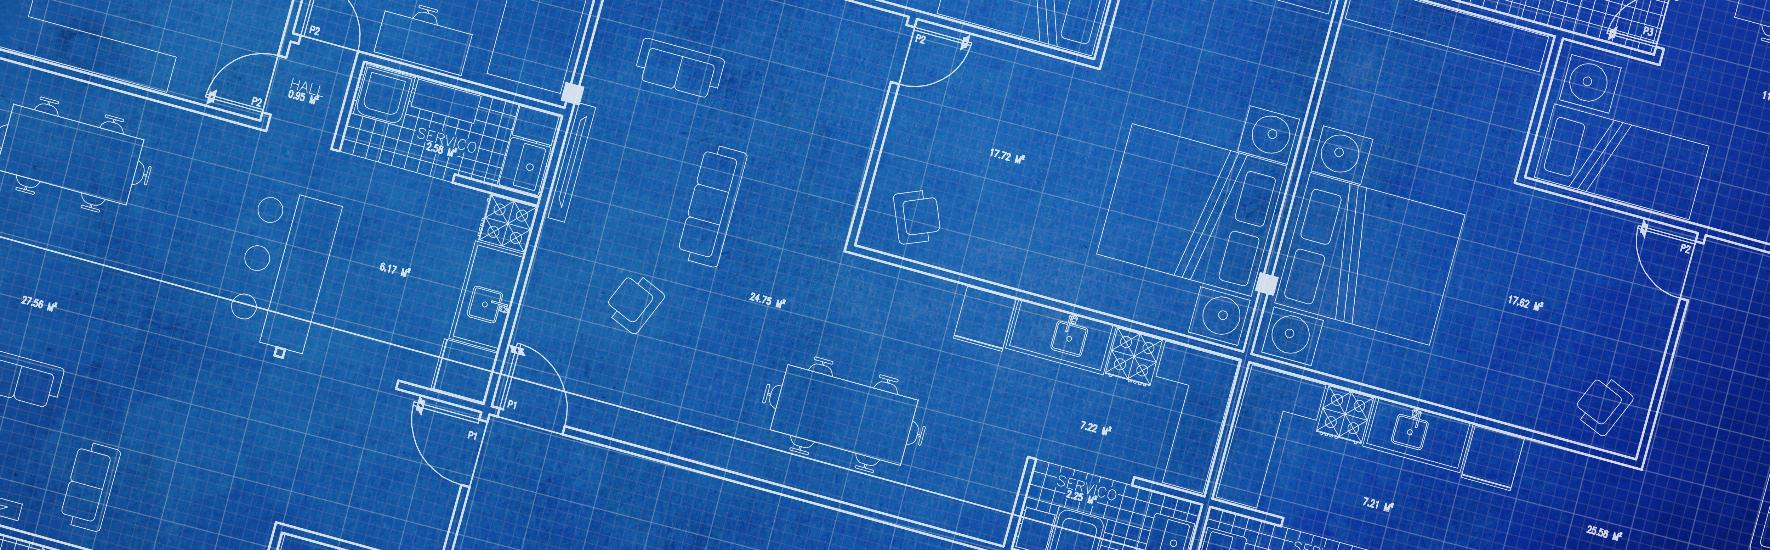 banner of House Plans and Floor Plans